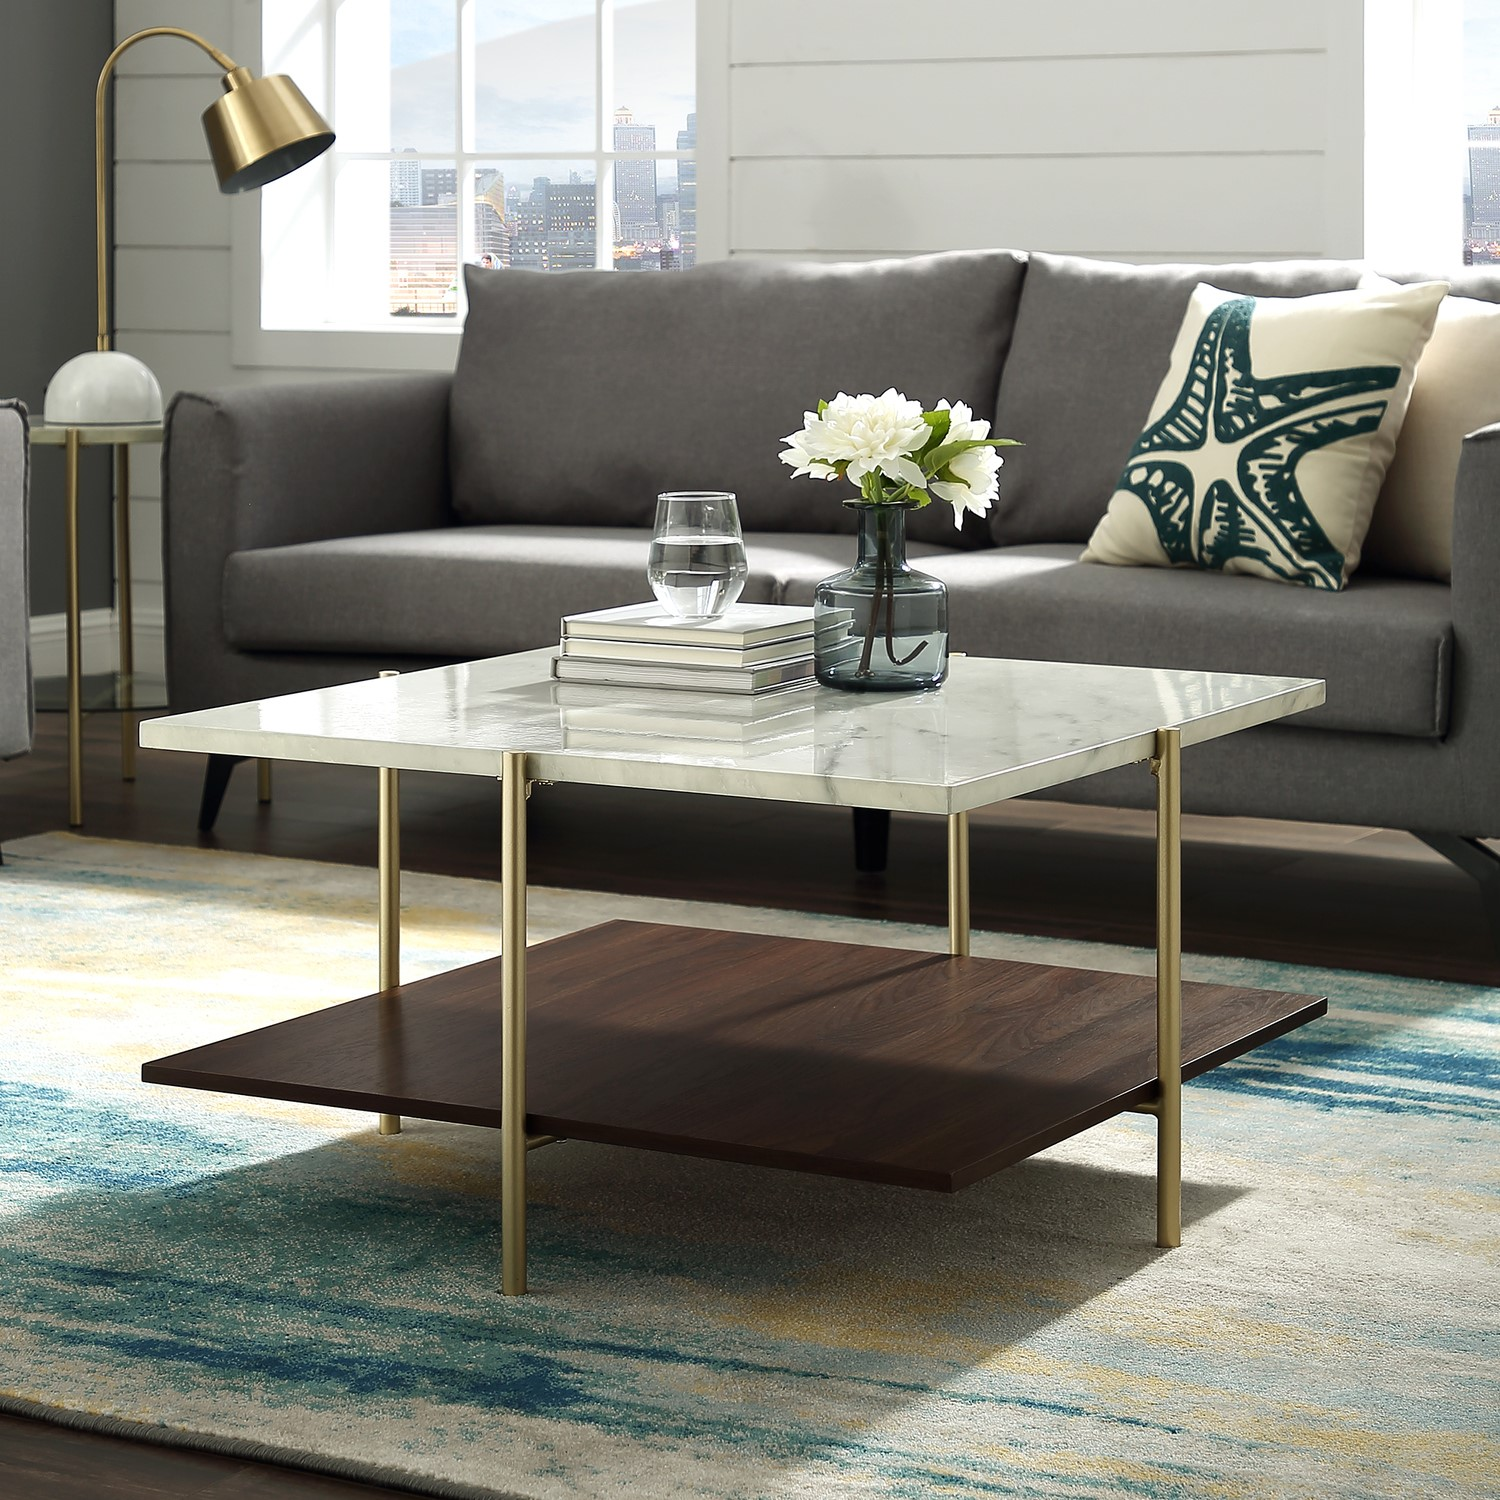 White Marble Square Coffee Table With Gold Legs Foster Furniture123